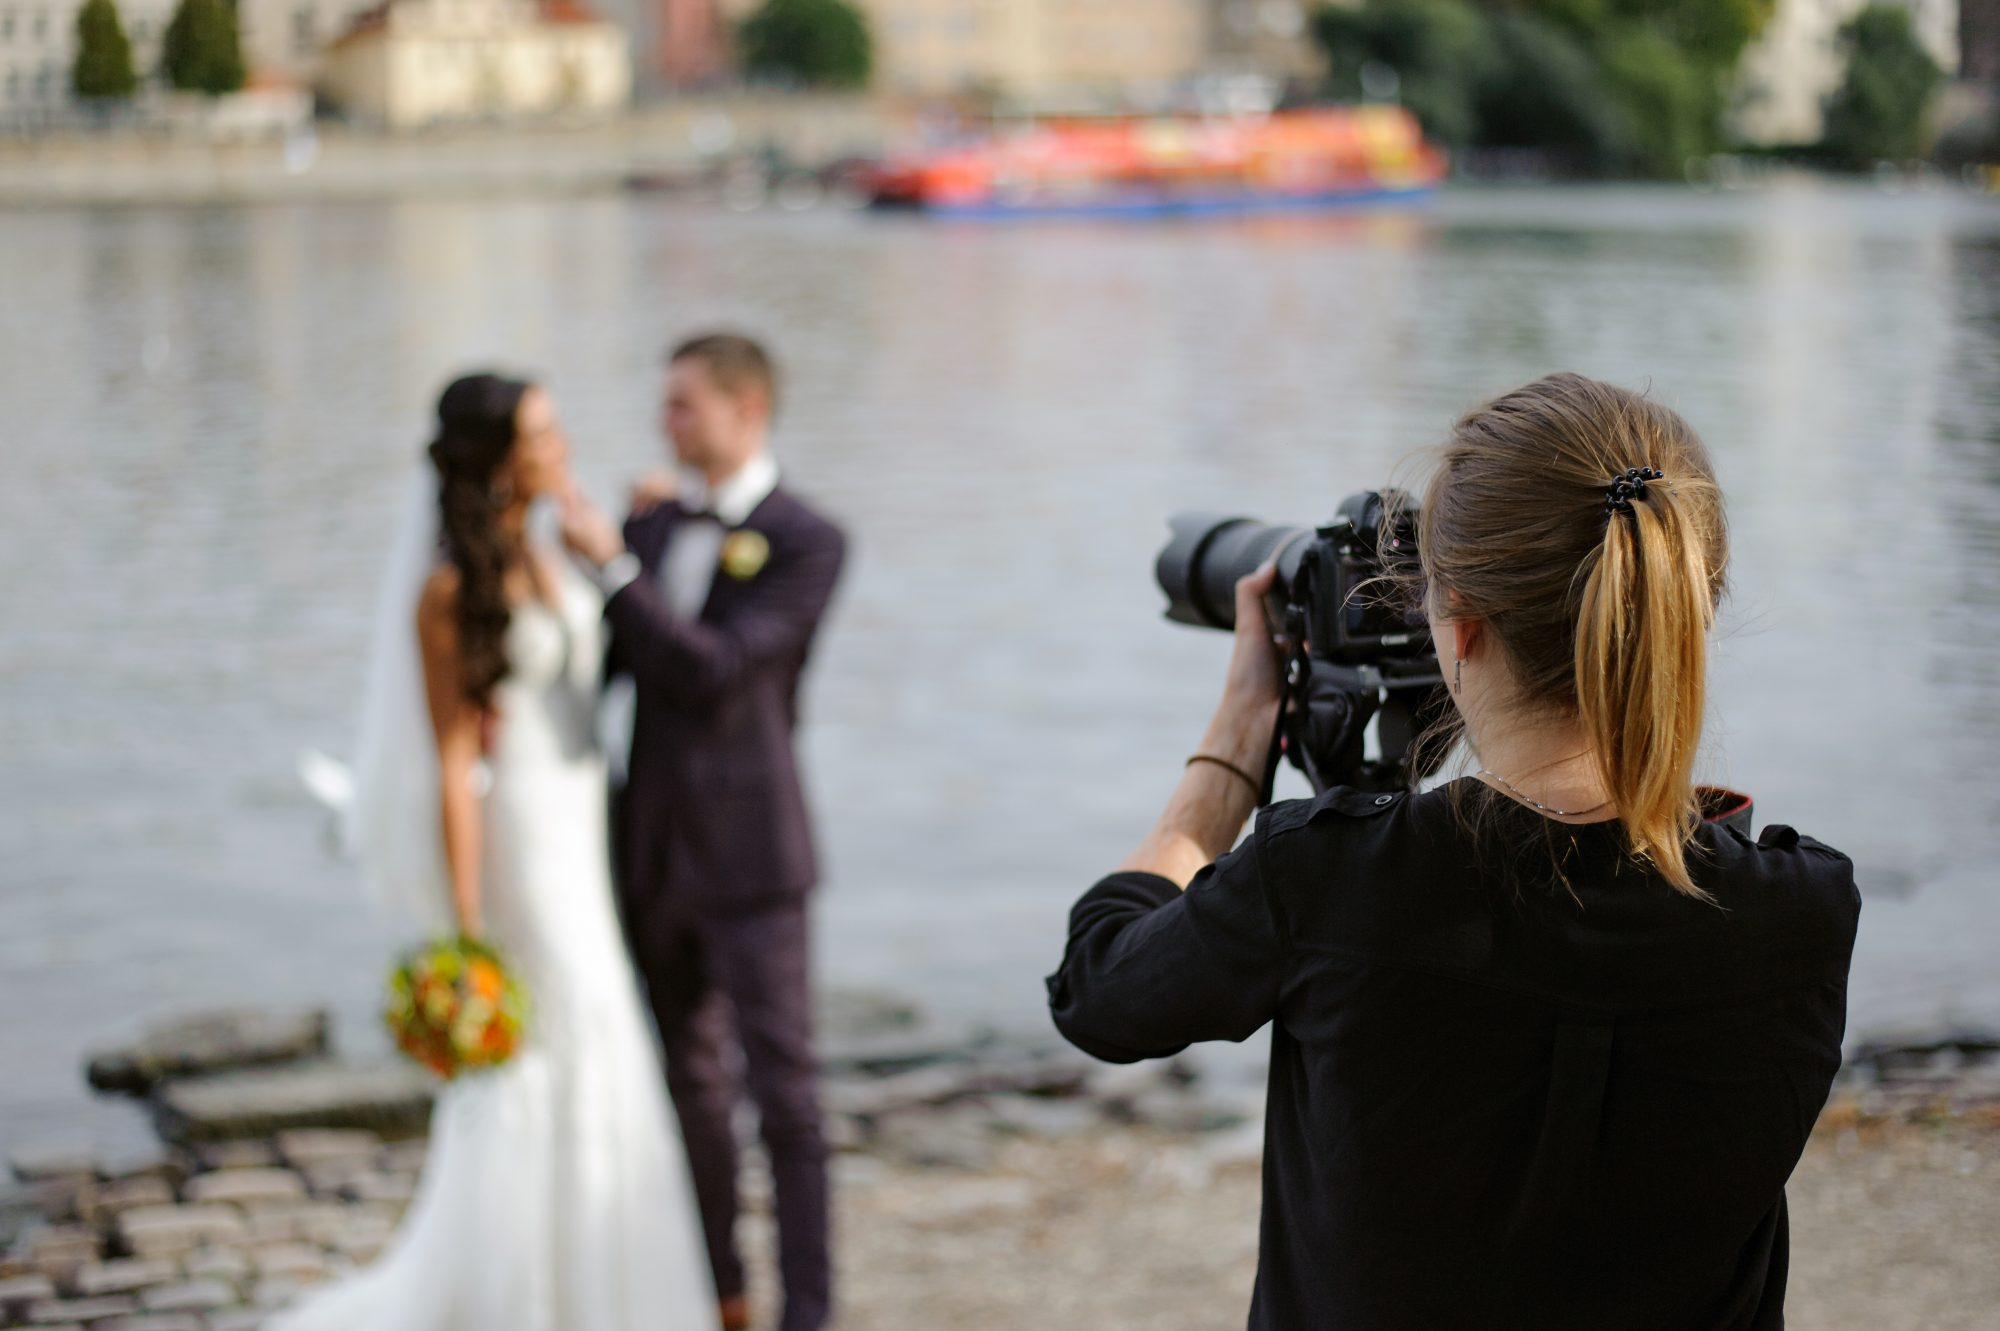 female wedding photographer shooting a wedding